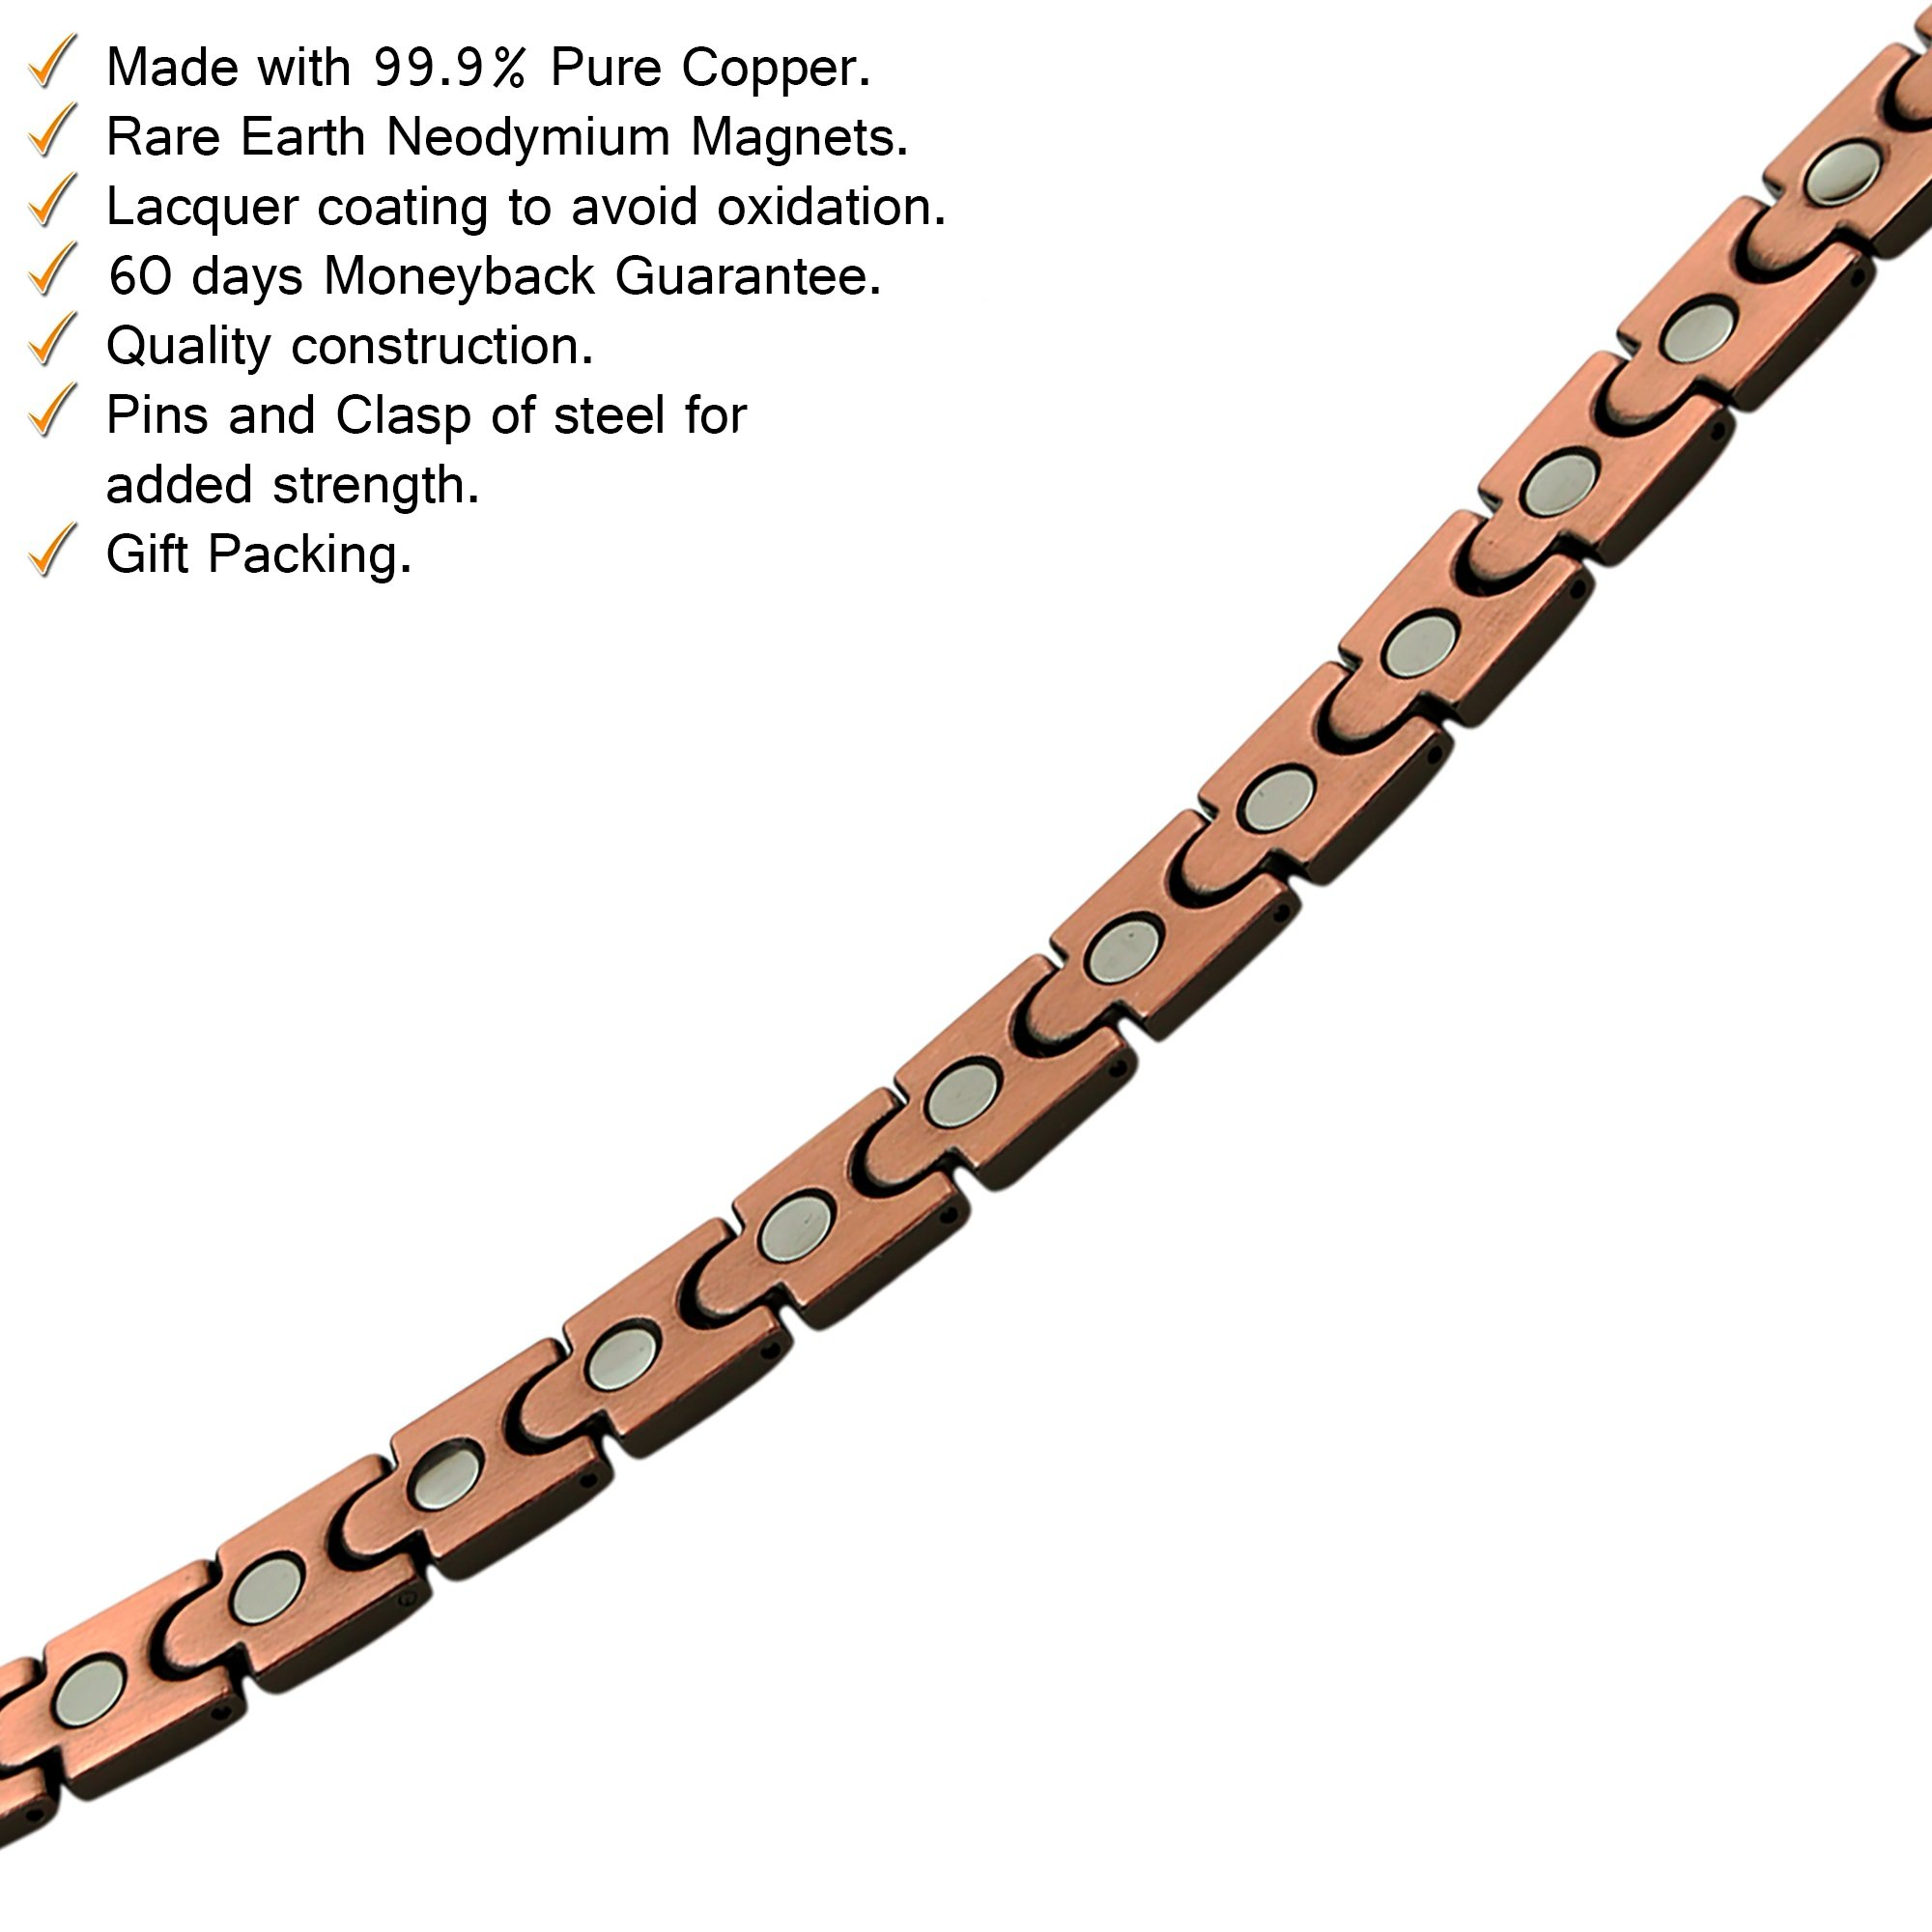 Reevaria Mens Elegant Guaranteed 99.9% Pure Copper Magnetic Therapy Bracelet Pain Relief Arthritis Carpal Tunnel, 3500 Gauss Links by Reevaria (Image #4)